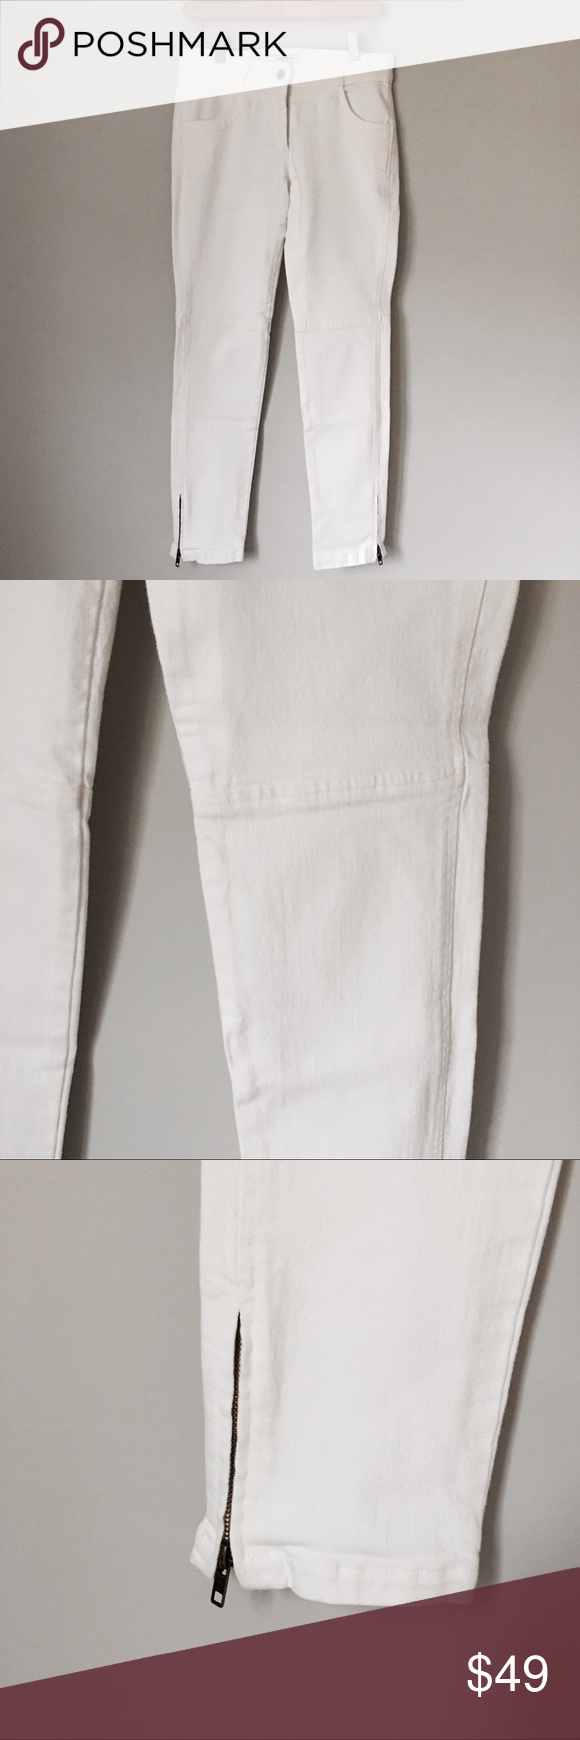 Emerson Fry White Jeans NWOT White skinny jeans with ankle zip. Fit a bit smaller than an actually 4. Emerson Fry Jeans Skinny #emersonfry Emerson Fry White Jeans NWOT White skinny jeans with ankle zip. Fit a bit smaller than an actually 4. Emerson Fry Jeans Skinny #emersonfry Emerson Fry White Jeans NWOT White skinny jeans with ankle zip. Fit a bit smaller than an actually 4. Emerson Fry Jeans Skinny #emersonfry Emerson Fry White Jeans NWOT White skinny jeans with ankle zip. Fit a bit smaller t #emersonfry